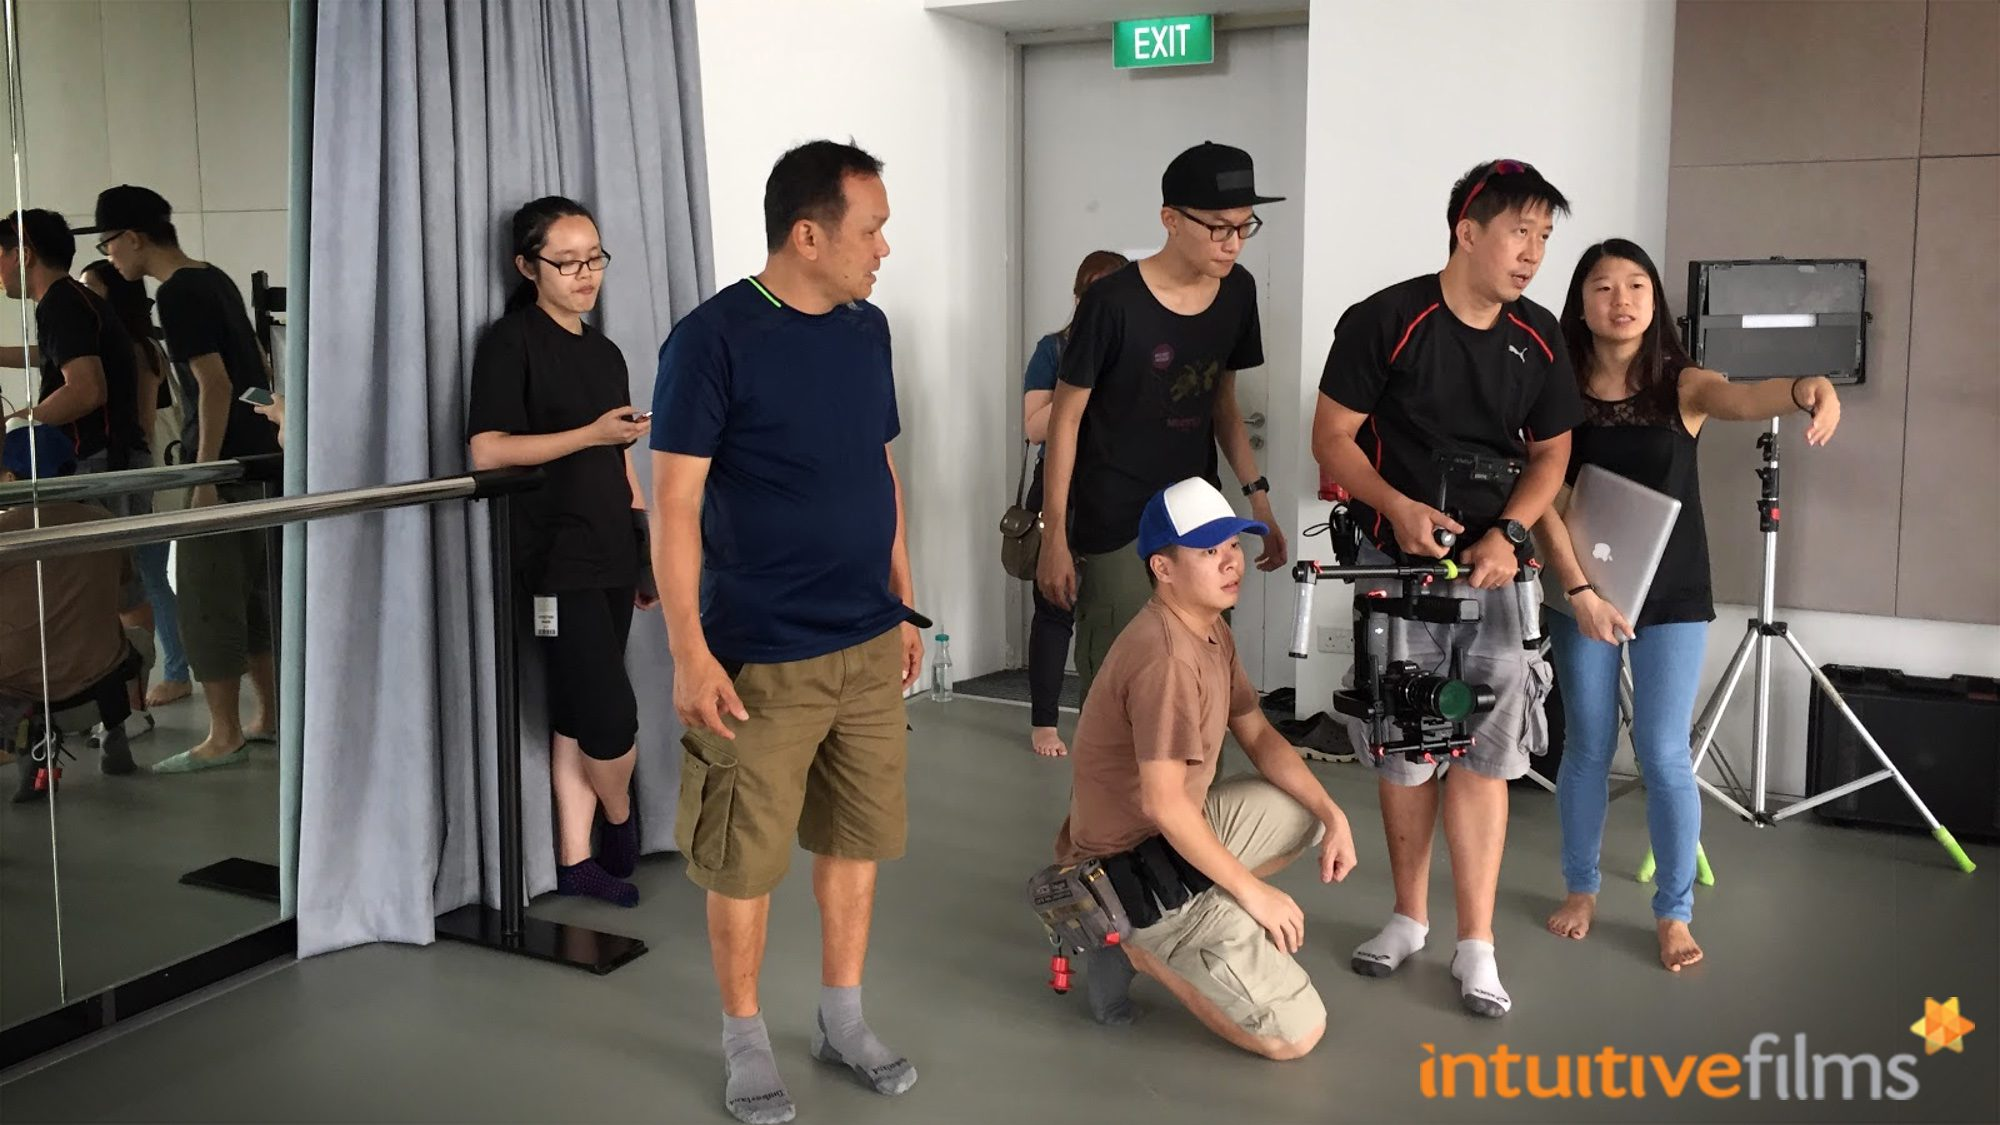 Behind the Scenes of our Video Production Filming for the SOTA Open House Social Media Videos - setting up the DJI Ronin 3-Axis Camera Gimbal to capture the dynamic movements of dance.